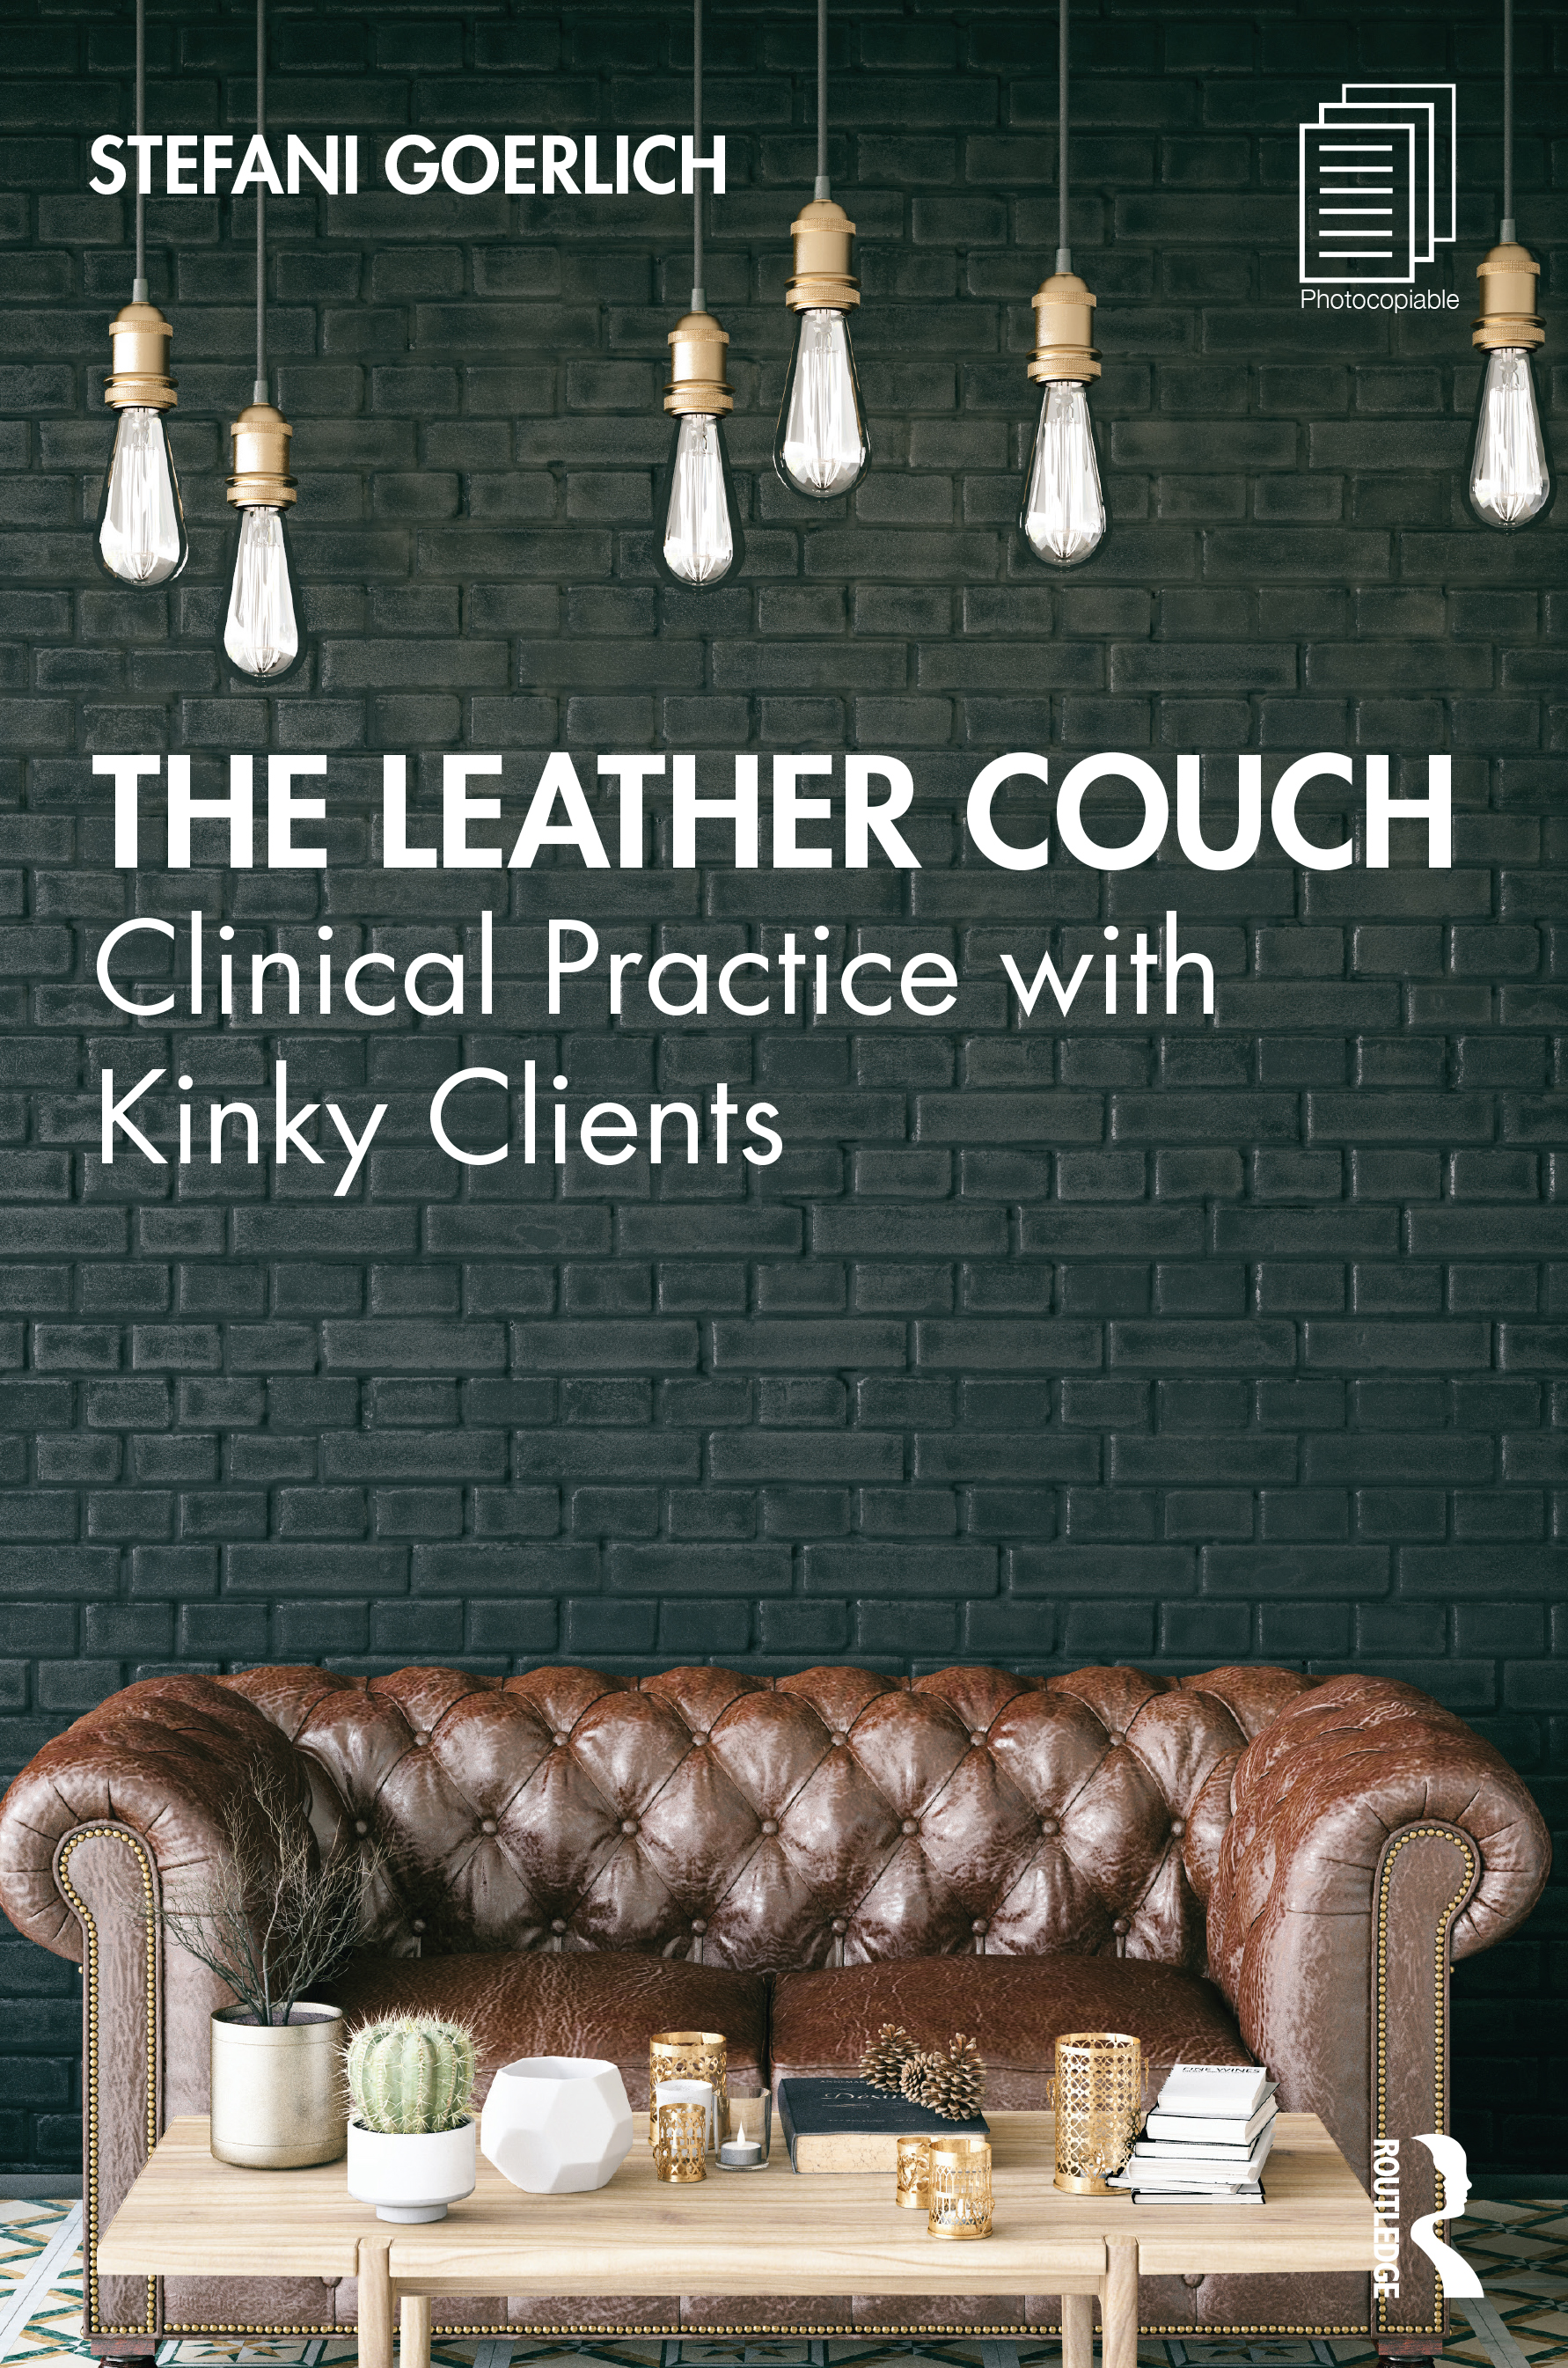 The Leather Couch: Clinical Practice with Kinky Clients book cover